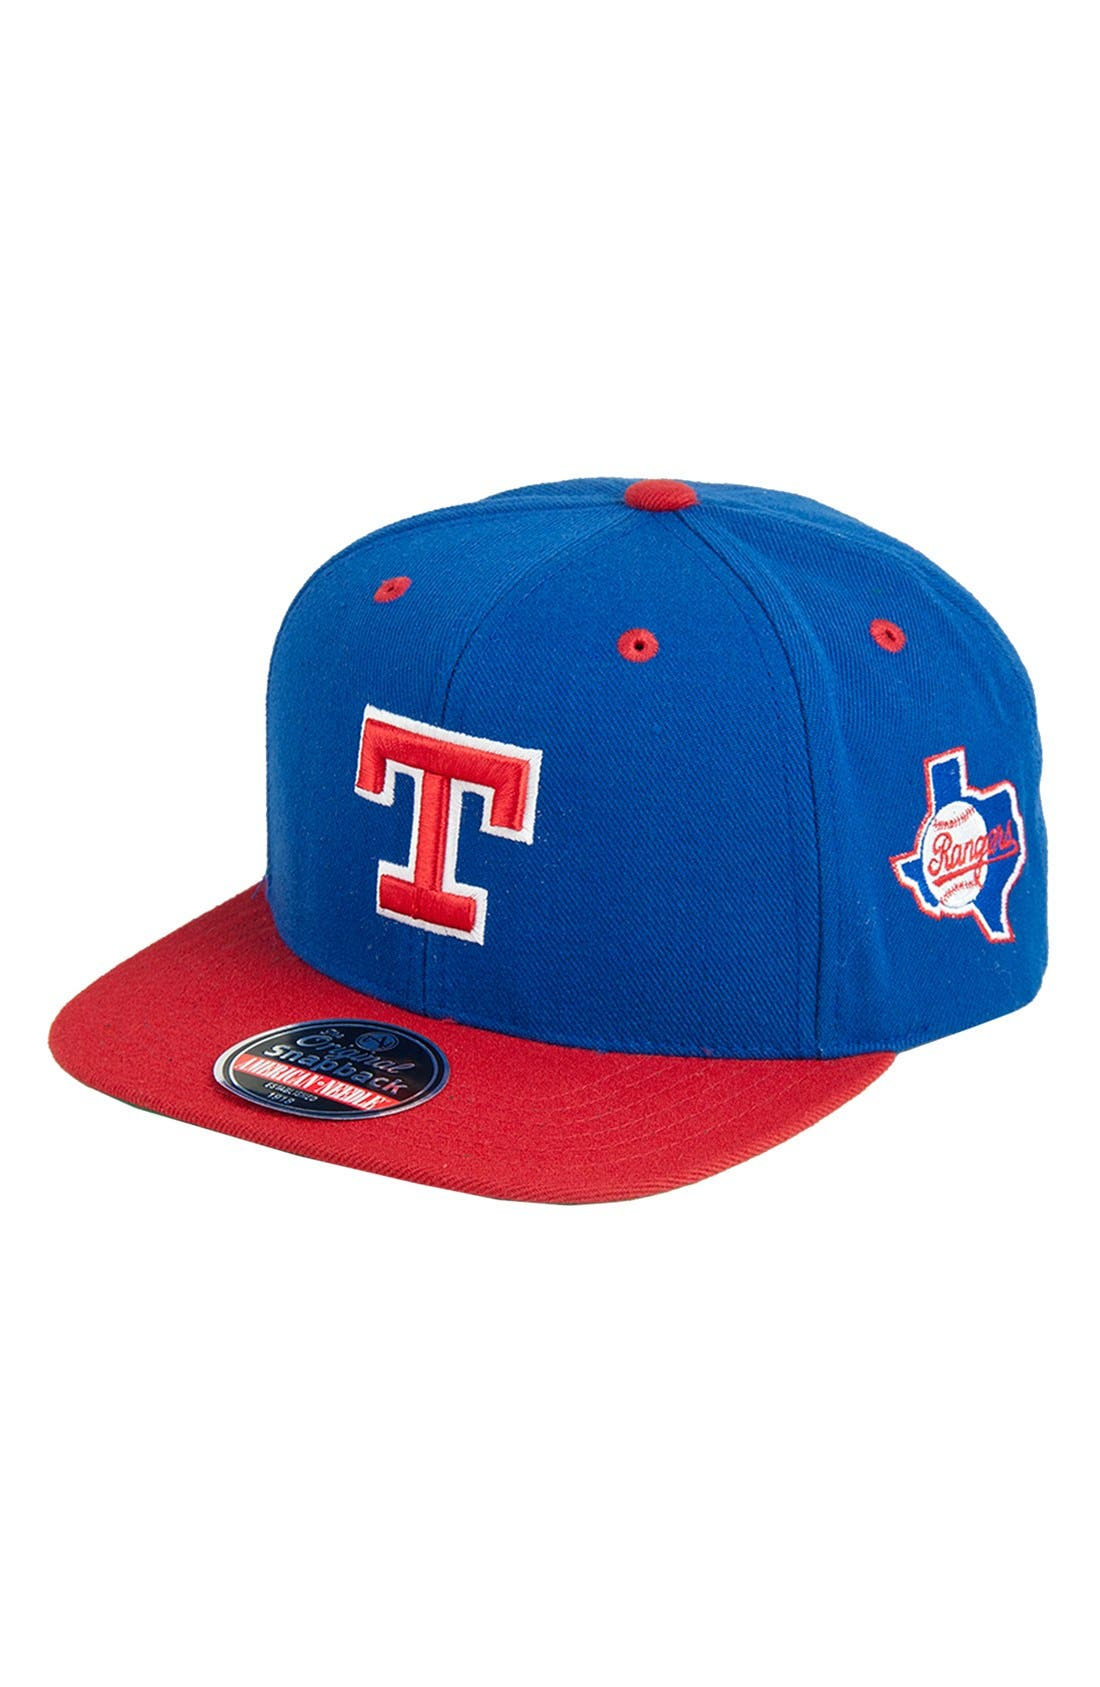 Alternate Image 1 Selected - American Needle 'Texas Rangers - Blockhead' Snapback Baseball Cap